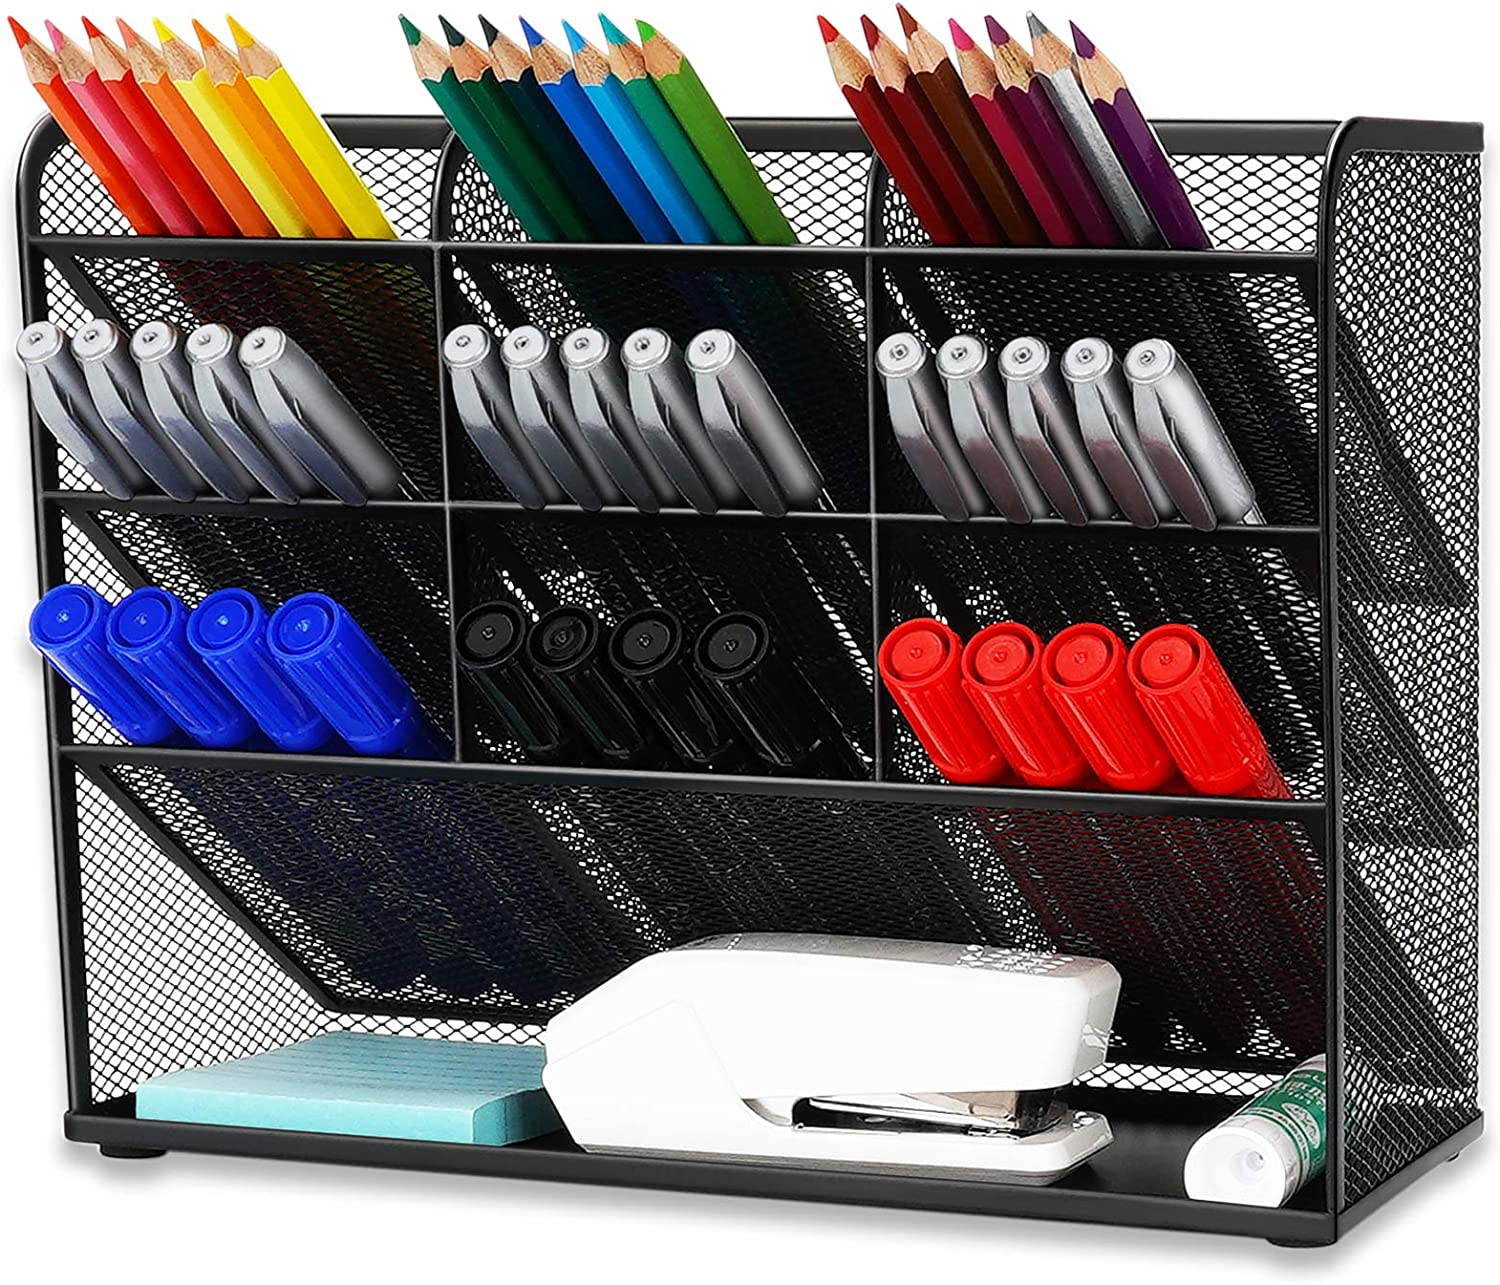 Wellerly Mesh Desk Organizer, Pencil Holder, Office Multi-Functional Desktop Organizer Collection - 9 Compartments with A Storage Rack - Markers Pen Holder for Office School Home Art Supply - Black